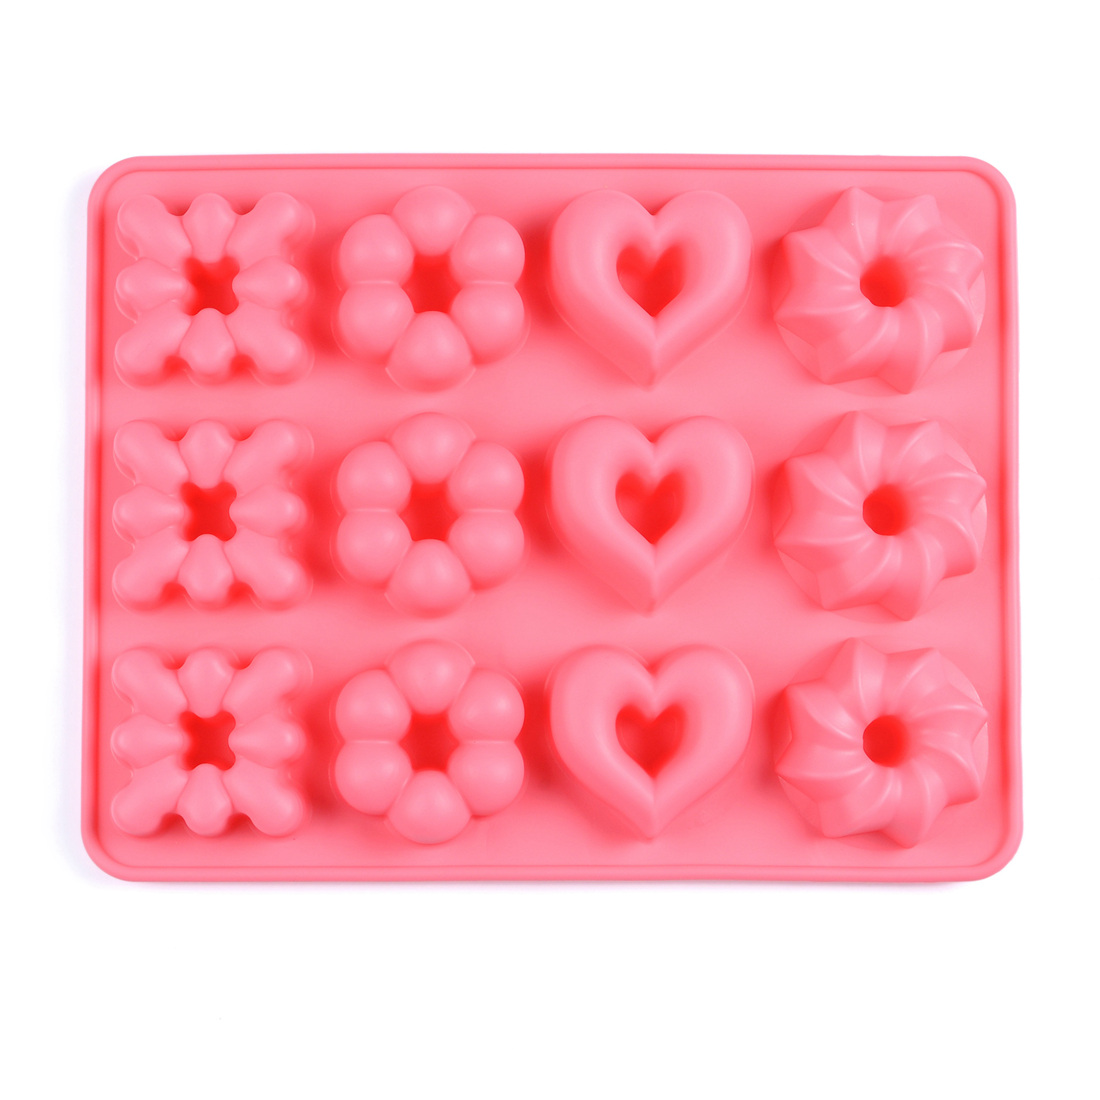 Best Silicone baking mold Dongguan for sale for kids-5